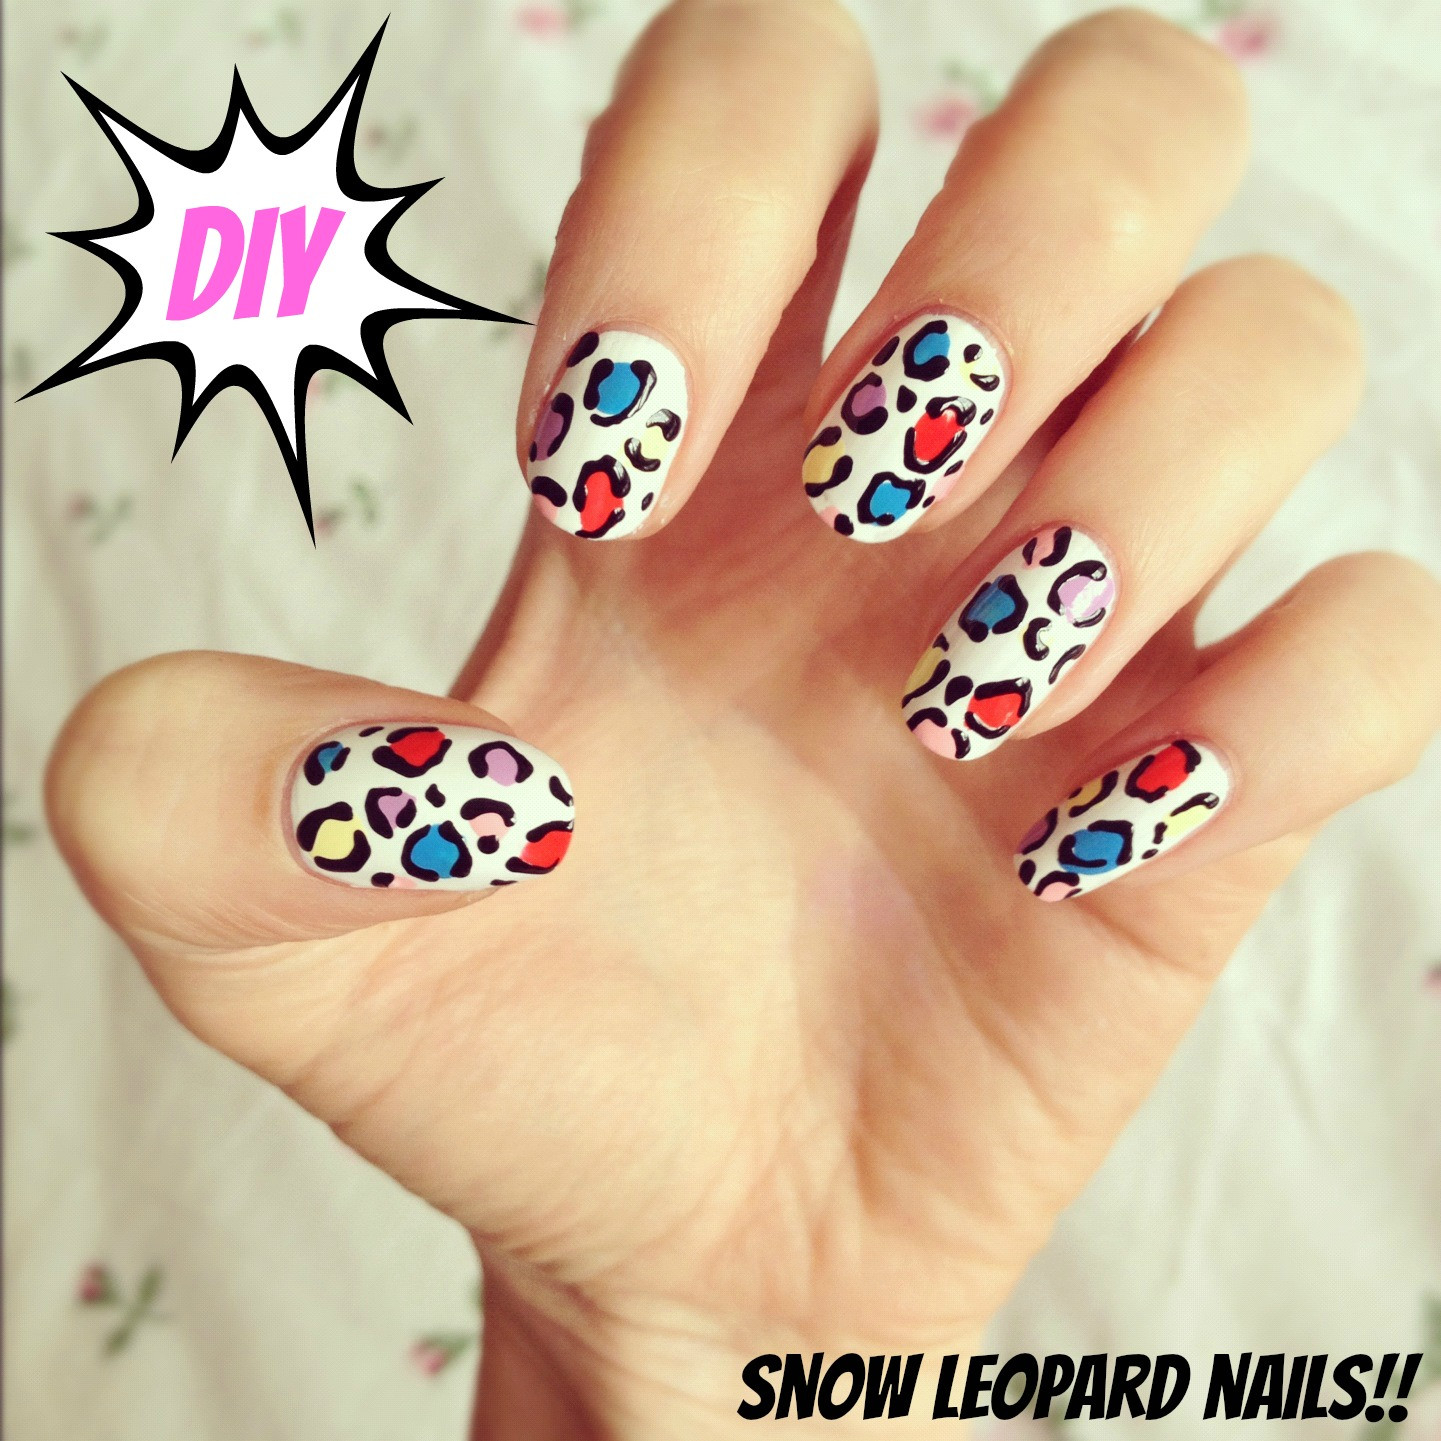 Best ideas about DIY Nail Art . Save or Pin DIY snow leopard nail art Now.